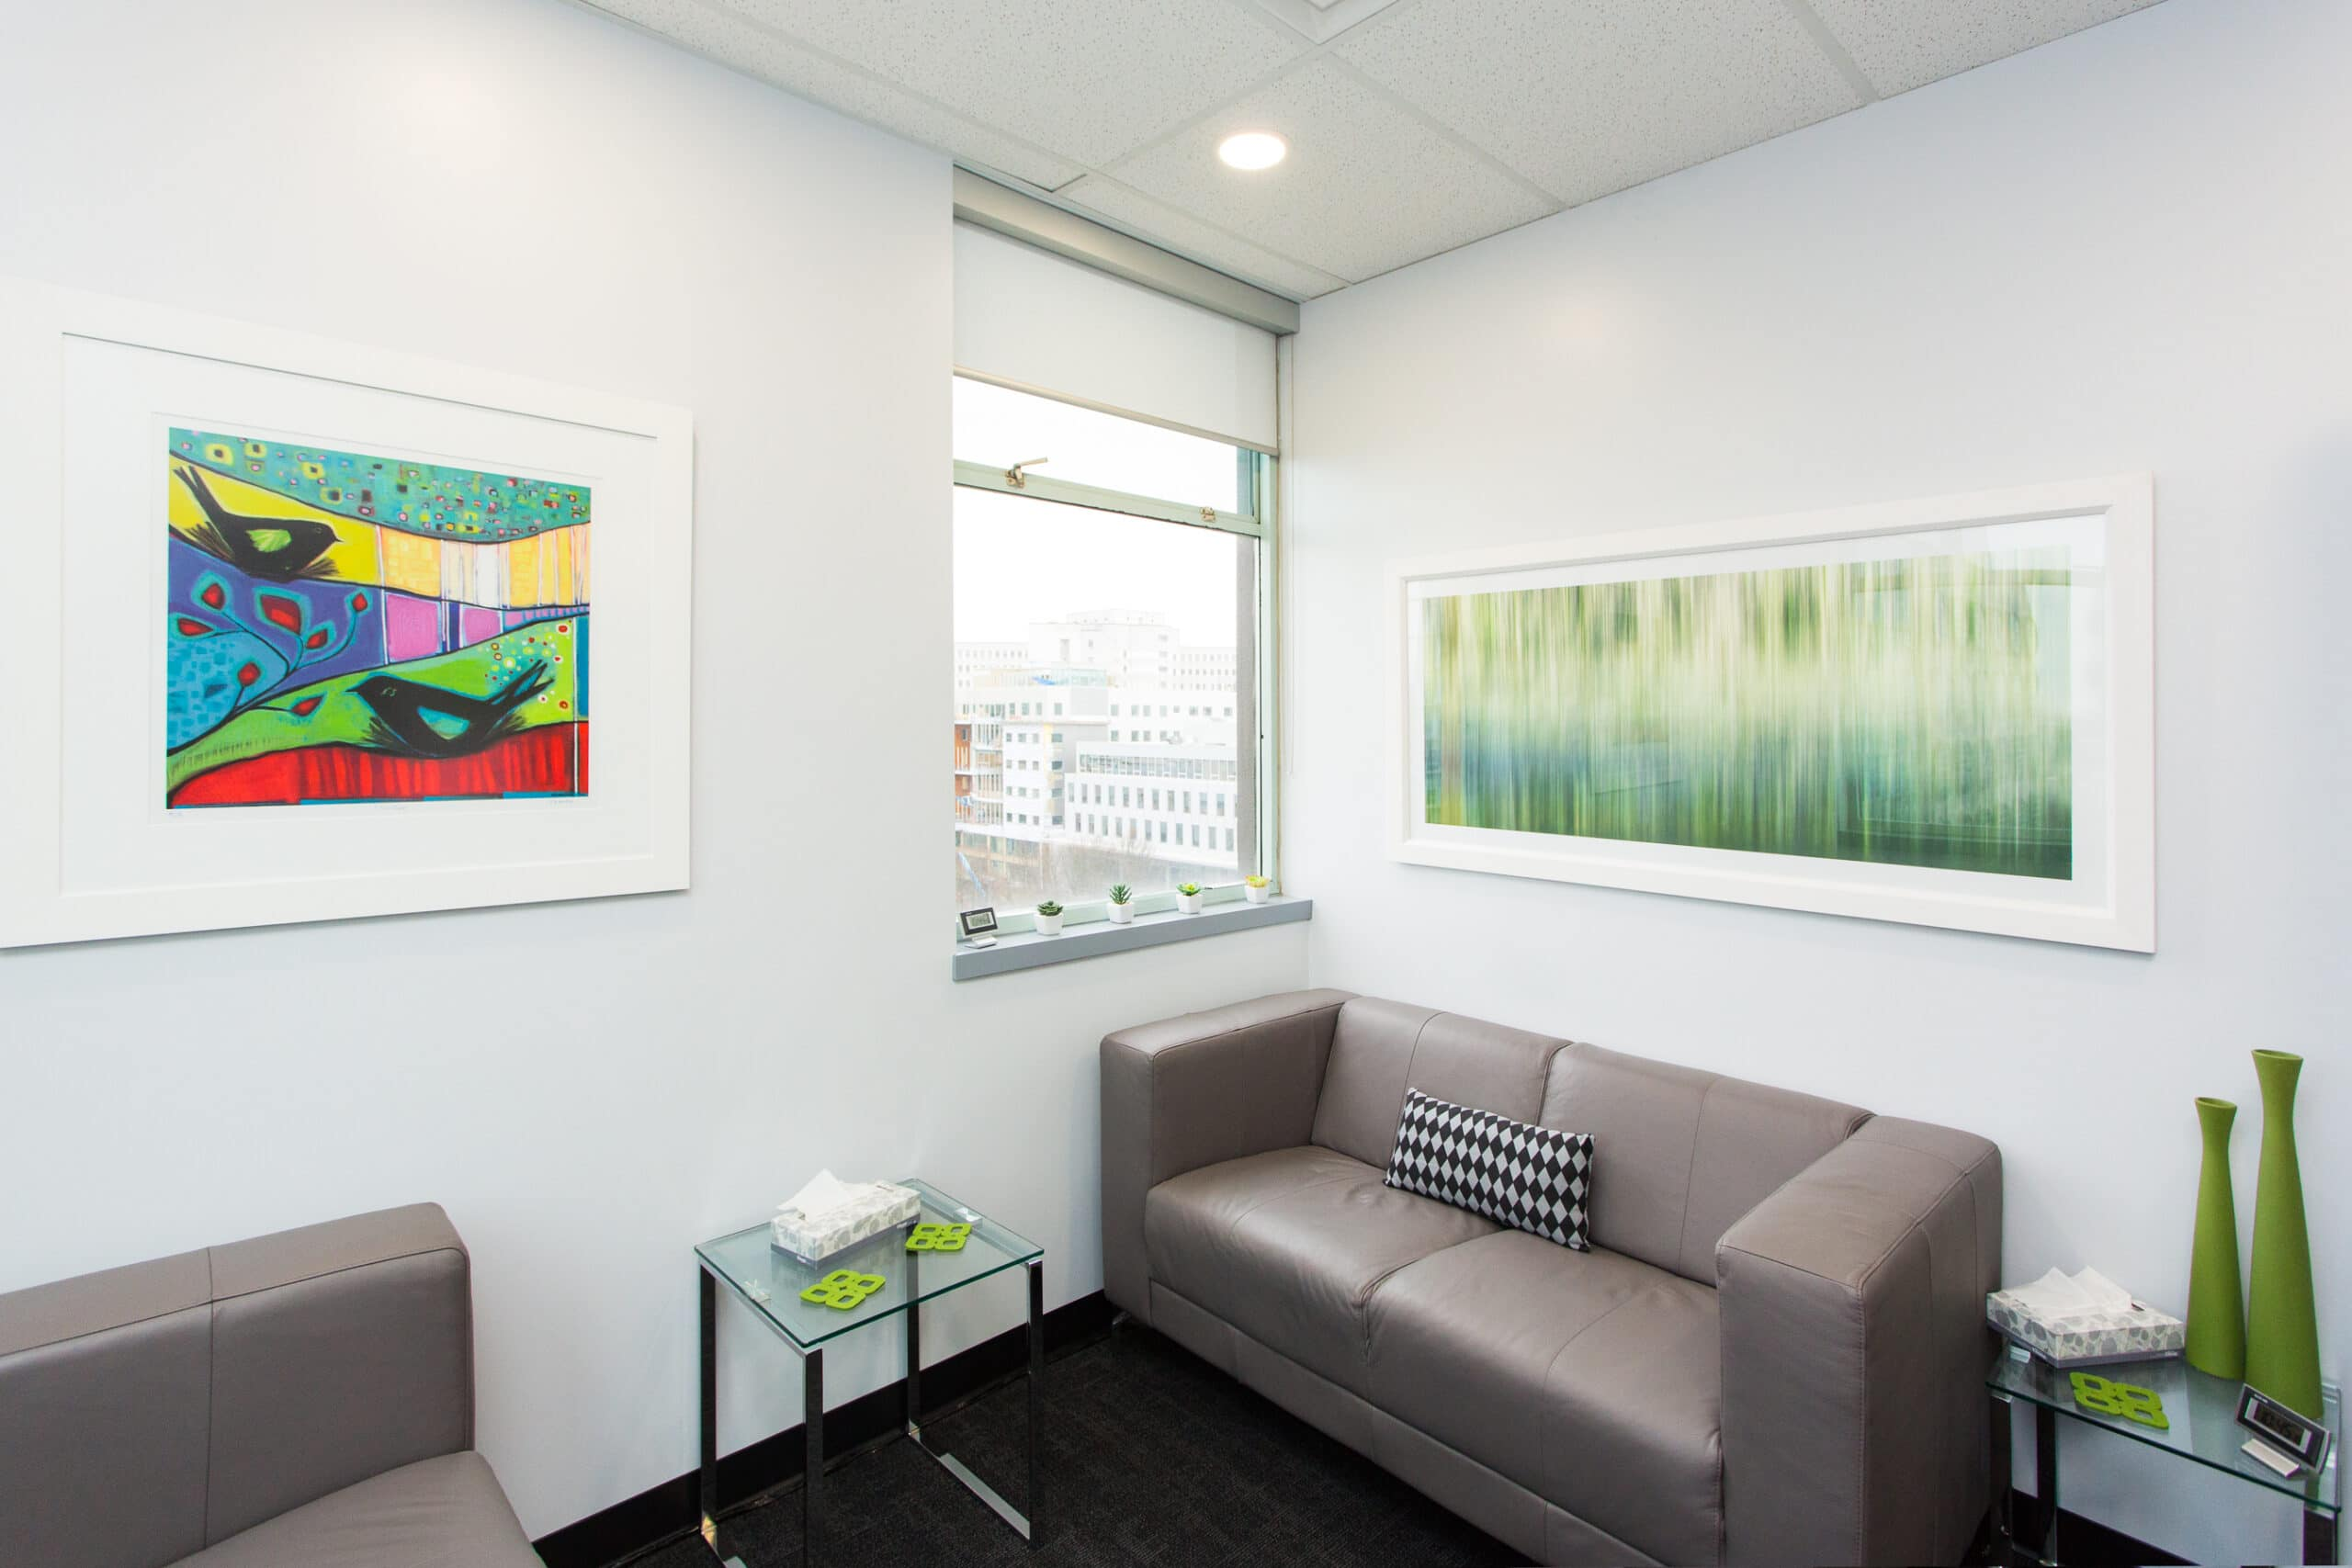 West Broadway, Vancouver Clinic - Jericho Counselling - Suite 1004 - 750 West Broadway, Vancouver, BC V5Z 1H9 Canada